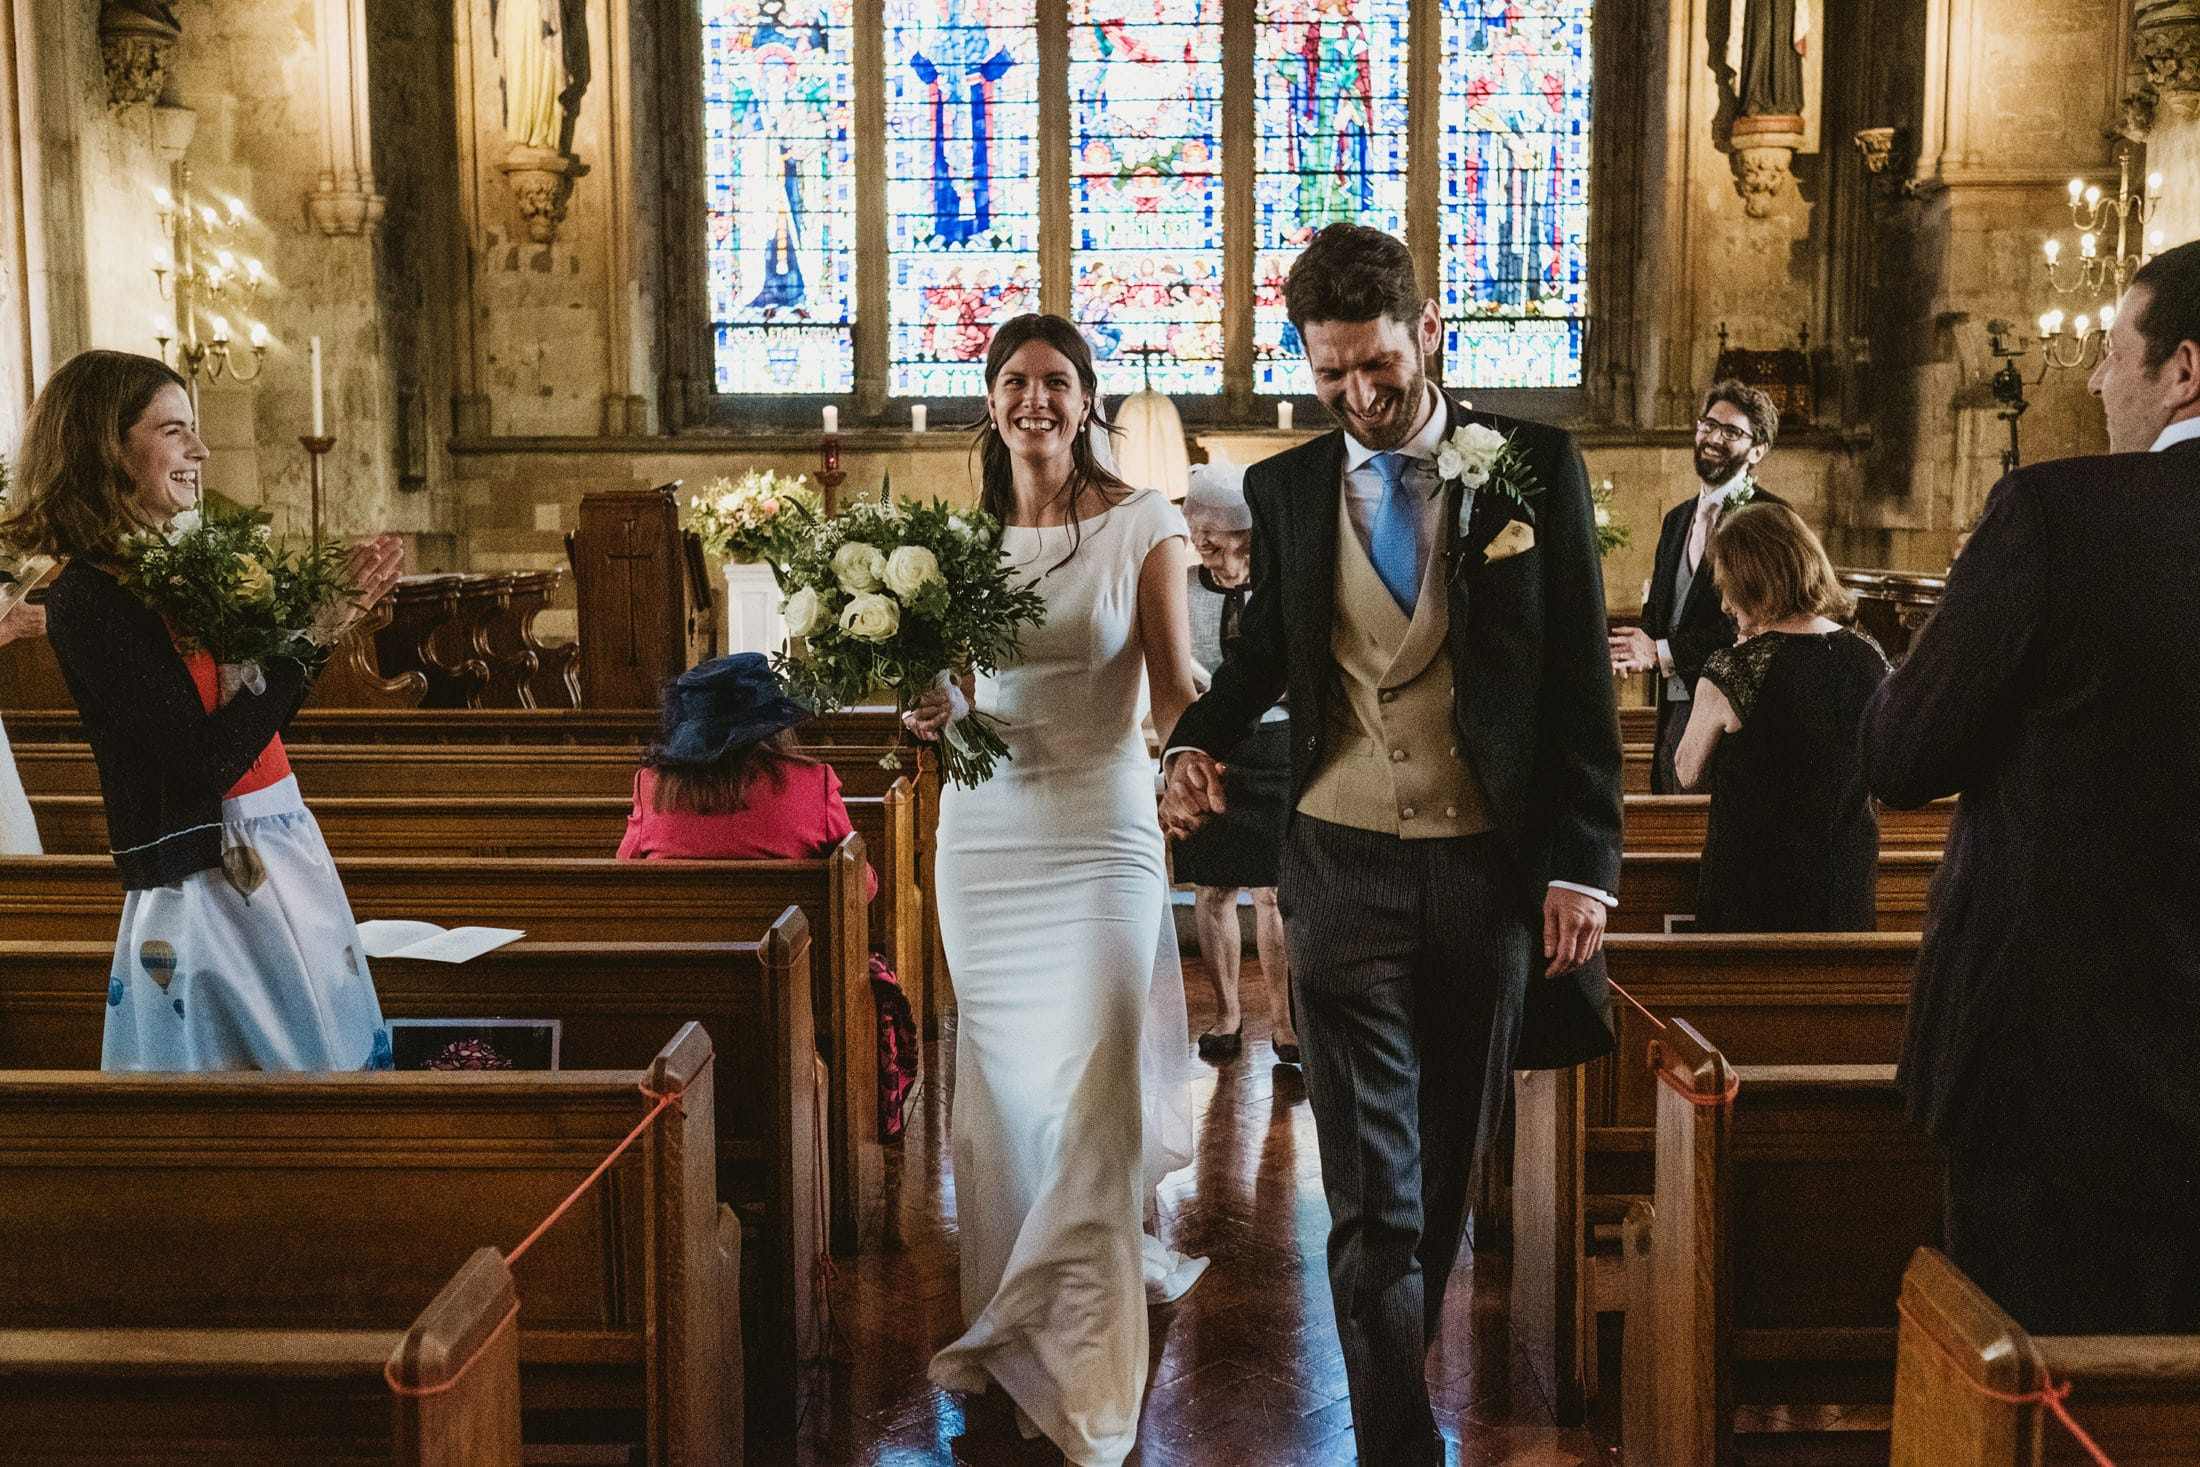 Bride and groom walk back down the aisle as husband and wife after an intimate london wedding.